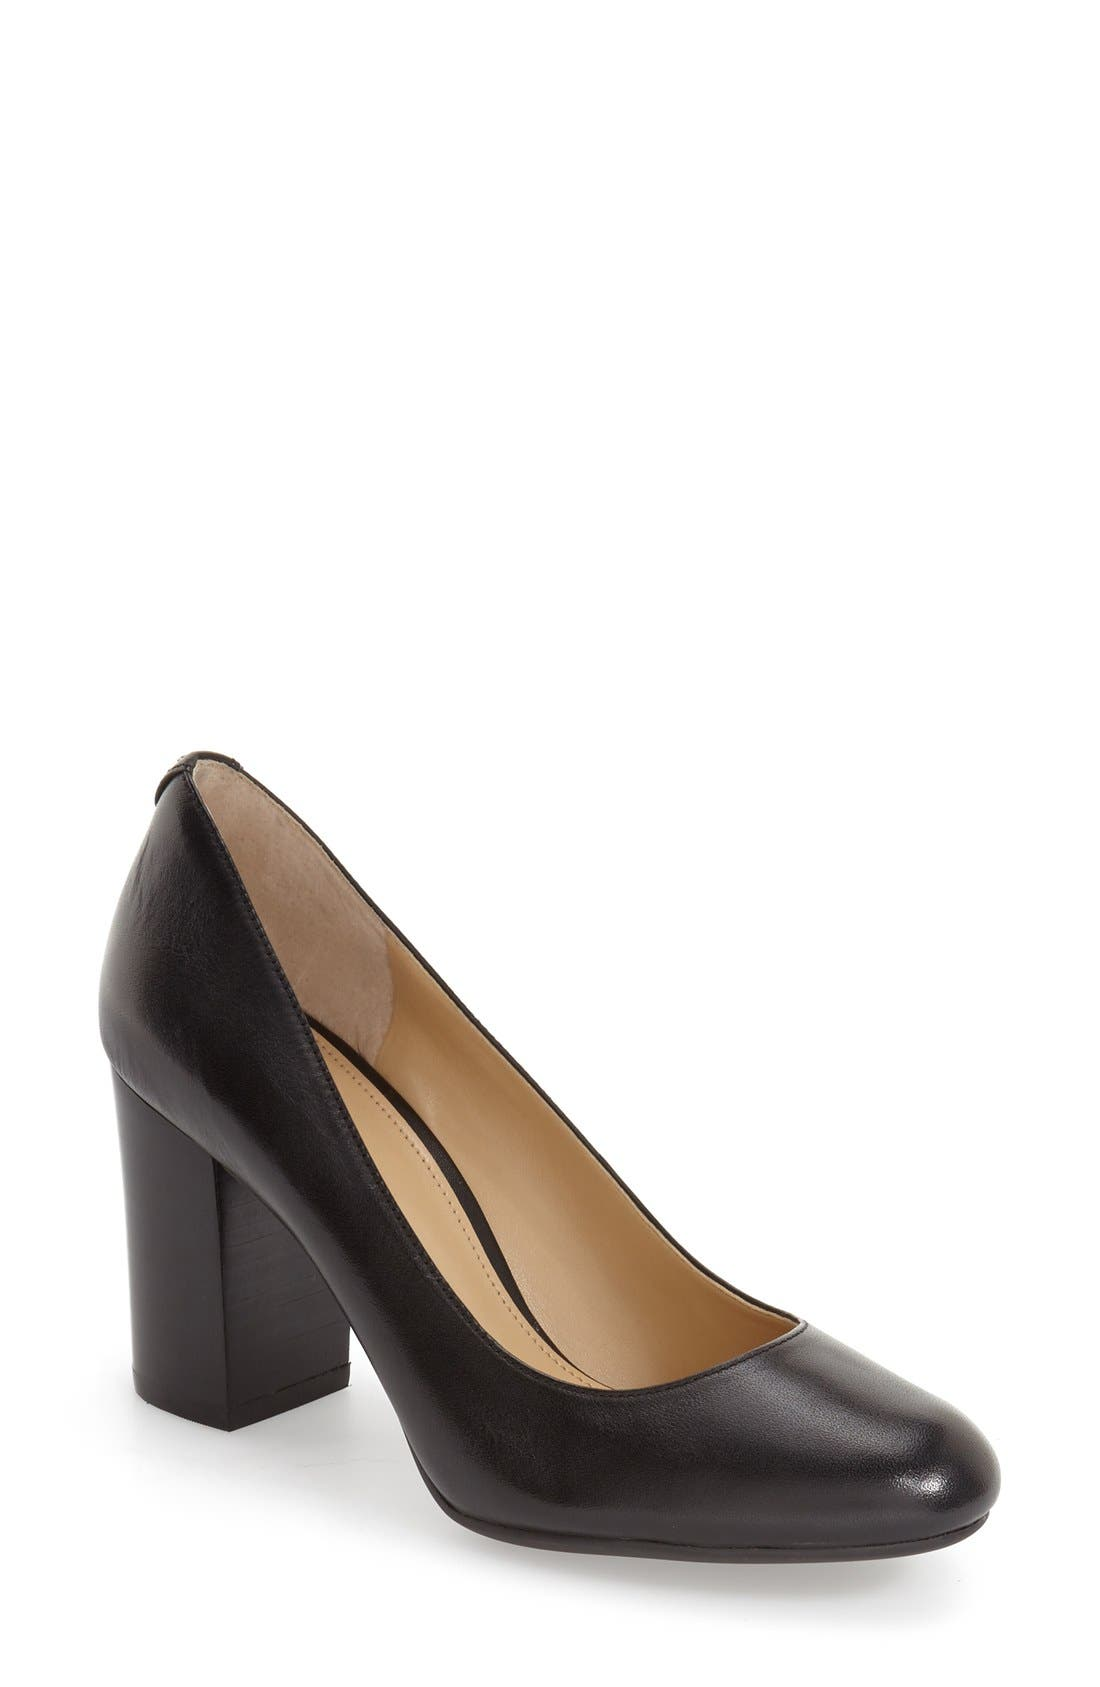 Alternate Image 1 Selected - MICHAEL Michael Kors 'Lucy - Flex' Round Toe Pump (Women)